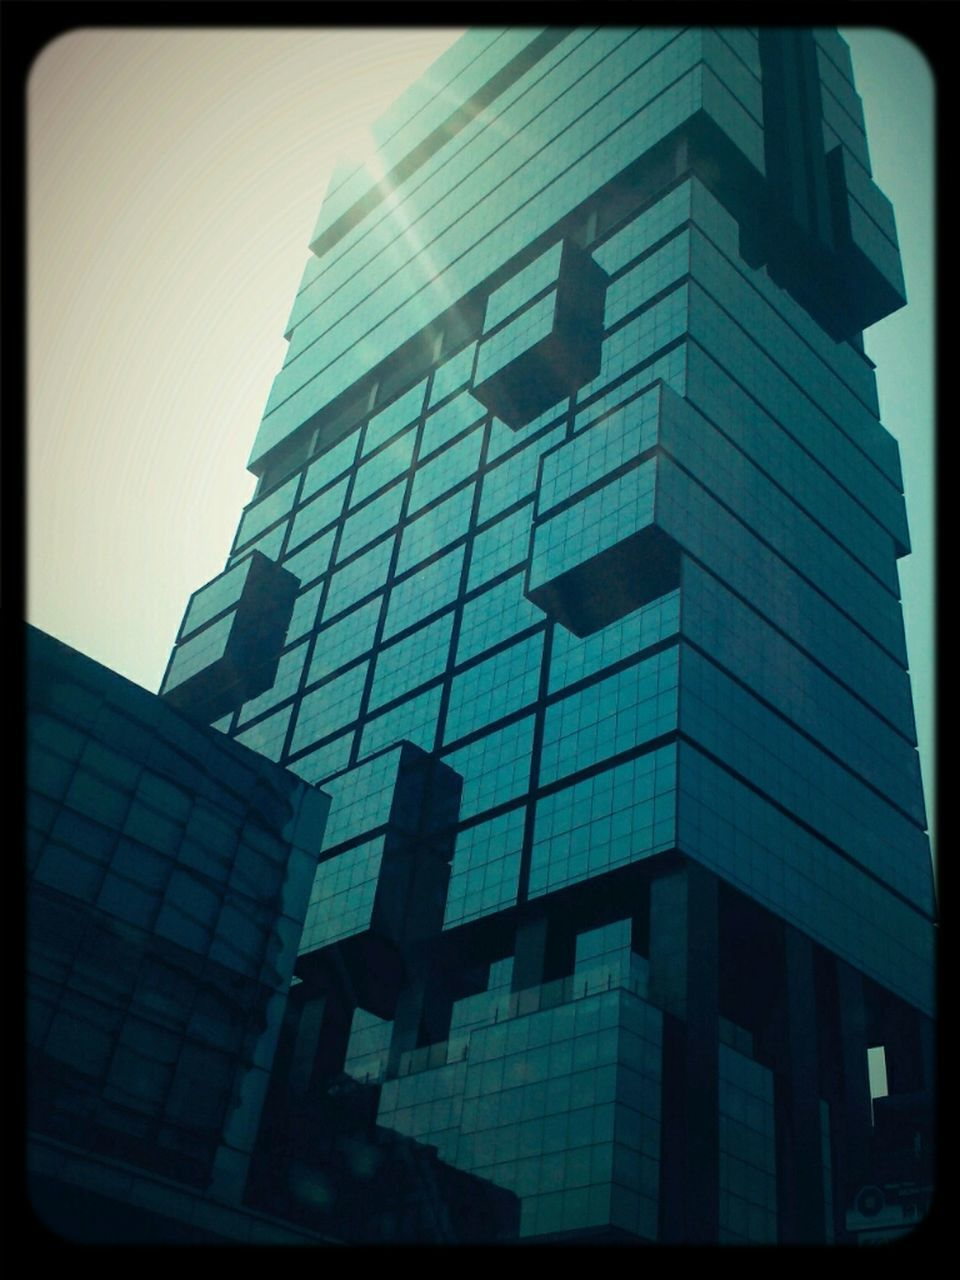 architecture, building exterior, built structure, auto post production filter, low angle view, modern, skyscraper, outdoors, window, day, no people, city, tall, sky, office park